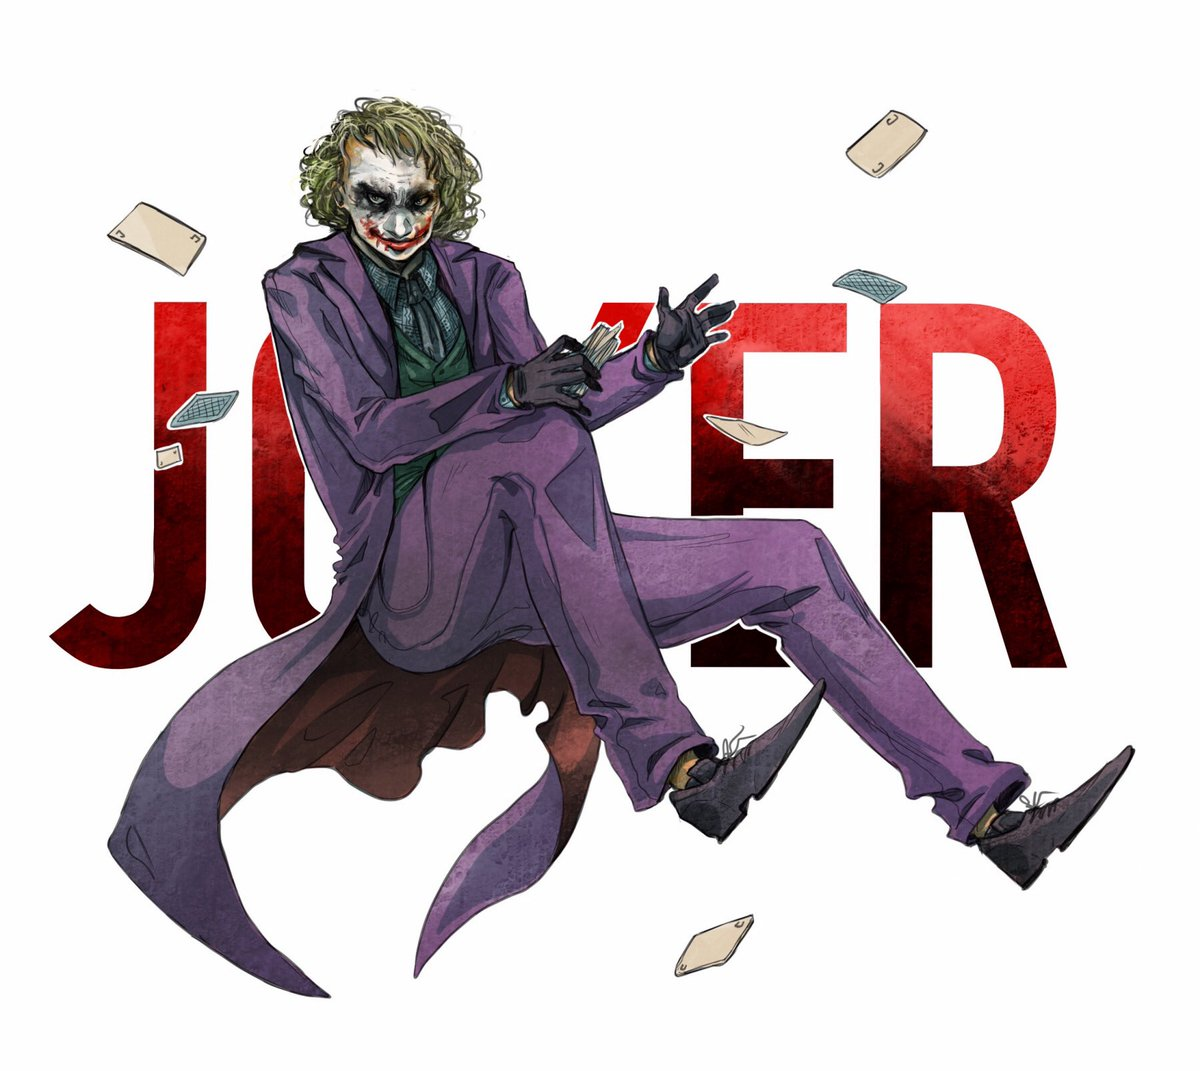 Couldn't sleep and I wanted to finish it so have some more Joker fanart, based on the Dark Knight Tryilogy. Hope you enjoy :) #Joker #Batman #TheDarkKnight